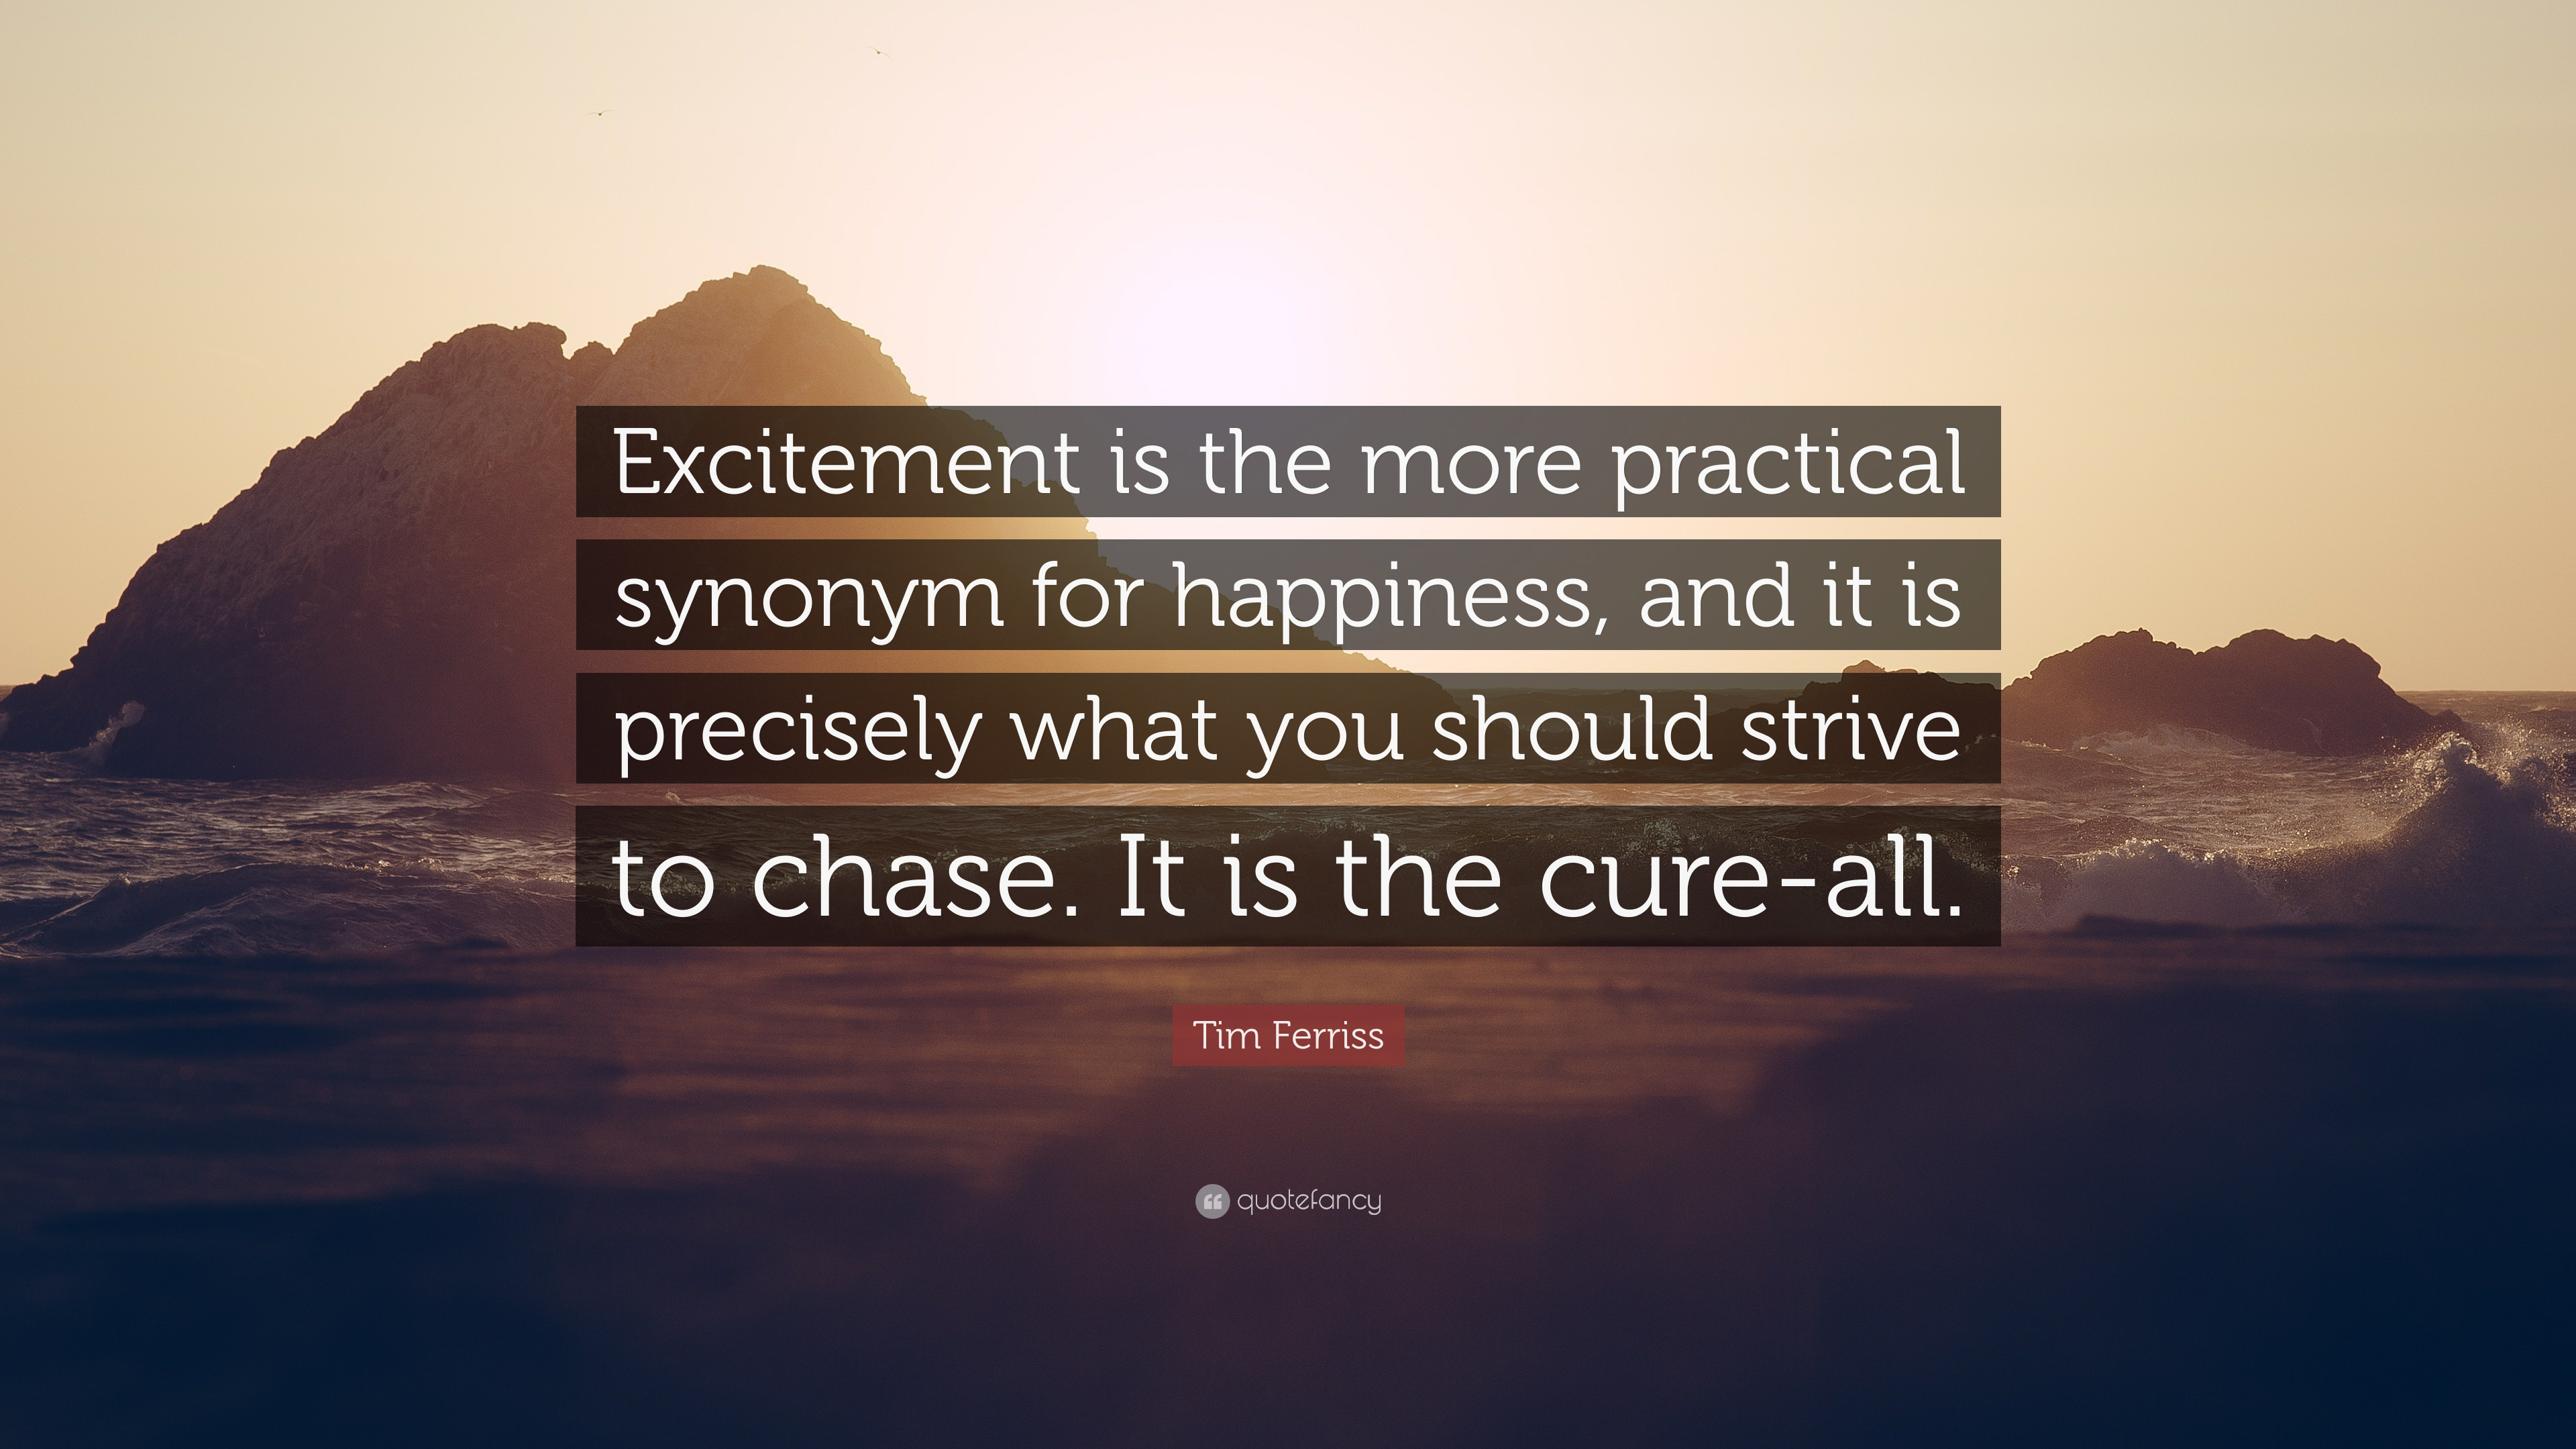 Tim Ferriss Quote Excitement Is The More Practical Synonym For Happiness And It Is Precisely What You Should Strive To Chase It Is The C 22 Wallpapers Quotefancy His excellency, having mounted on thesmall of my right leg, advanced forwards up to my face, with abouta dozen of his retinue; tim ferriss quote excitement is the